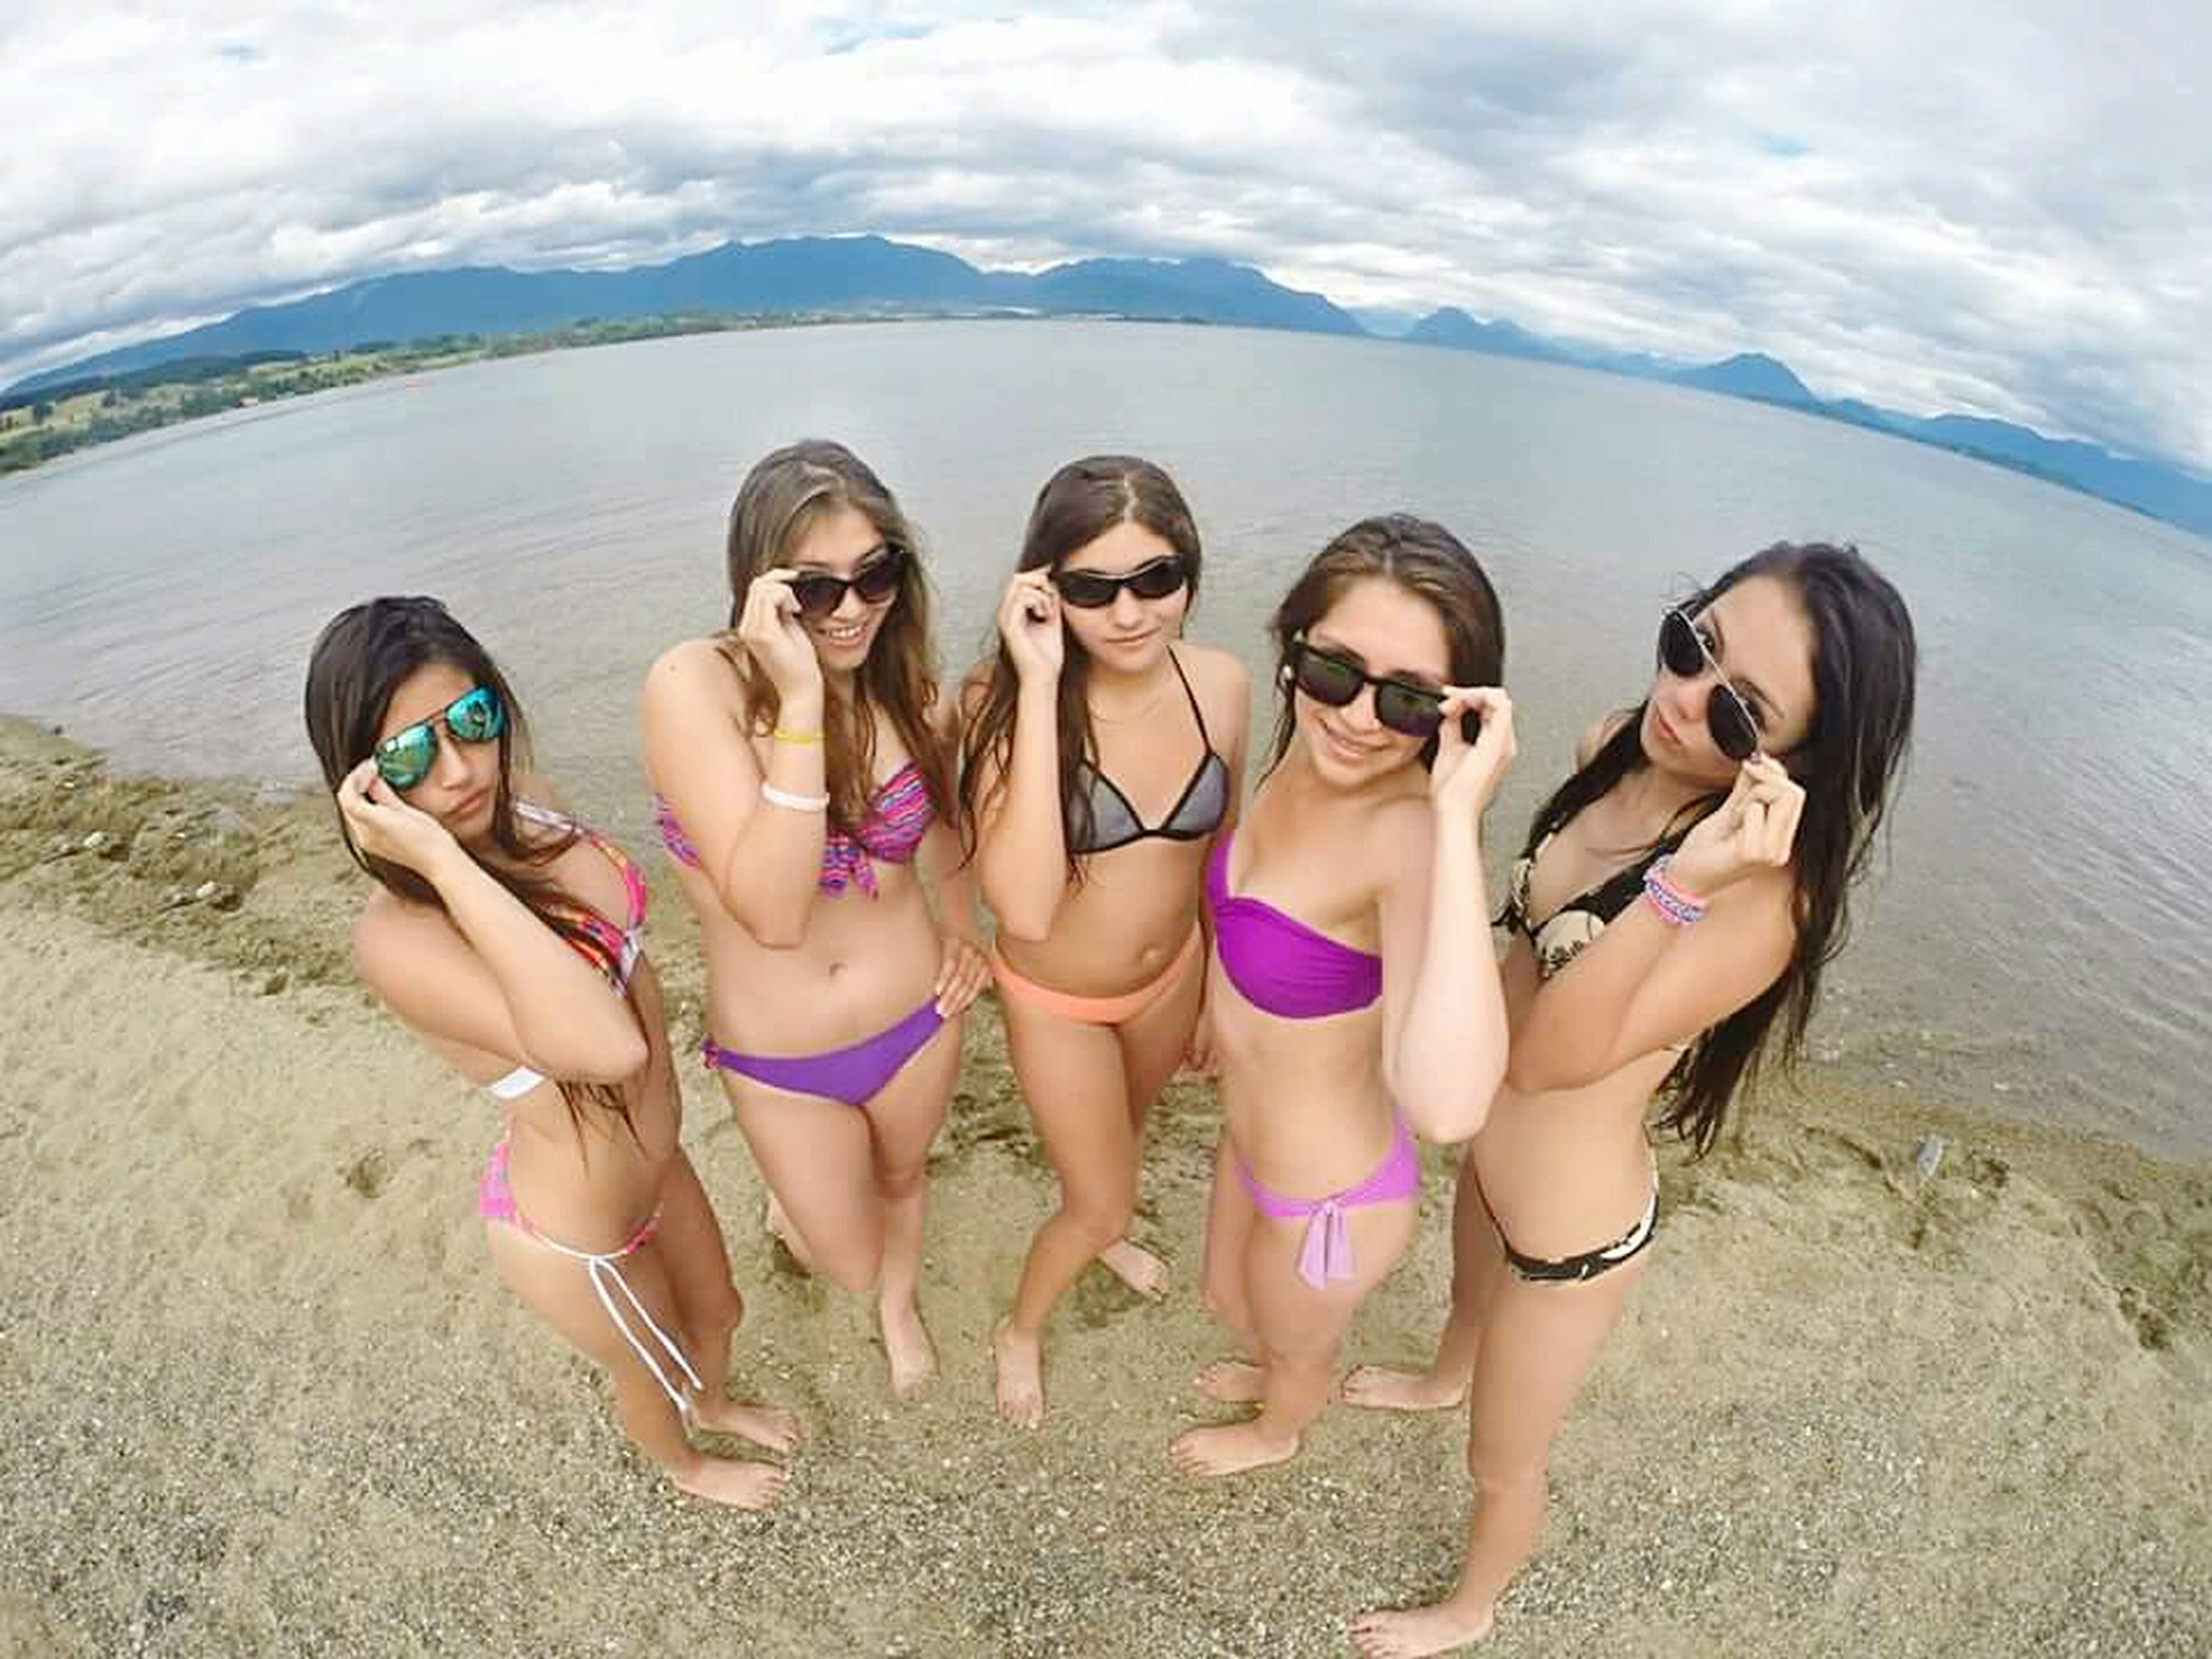 lifestyles, leisure activity, togetherness, young women, young adult, beach, bonding, water, vacations, person, friendship, casual clothing, love, sea, sky, enjoyment, happiness